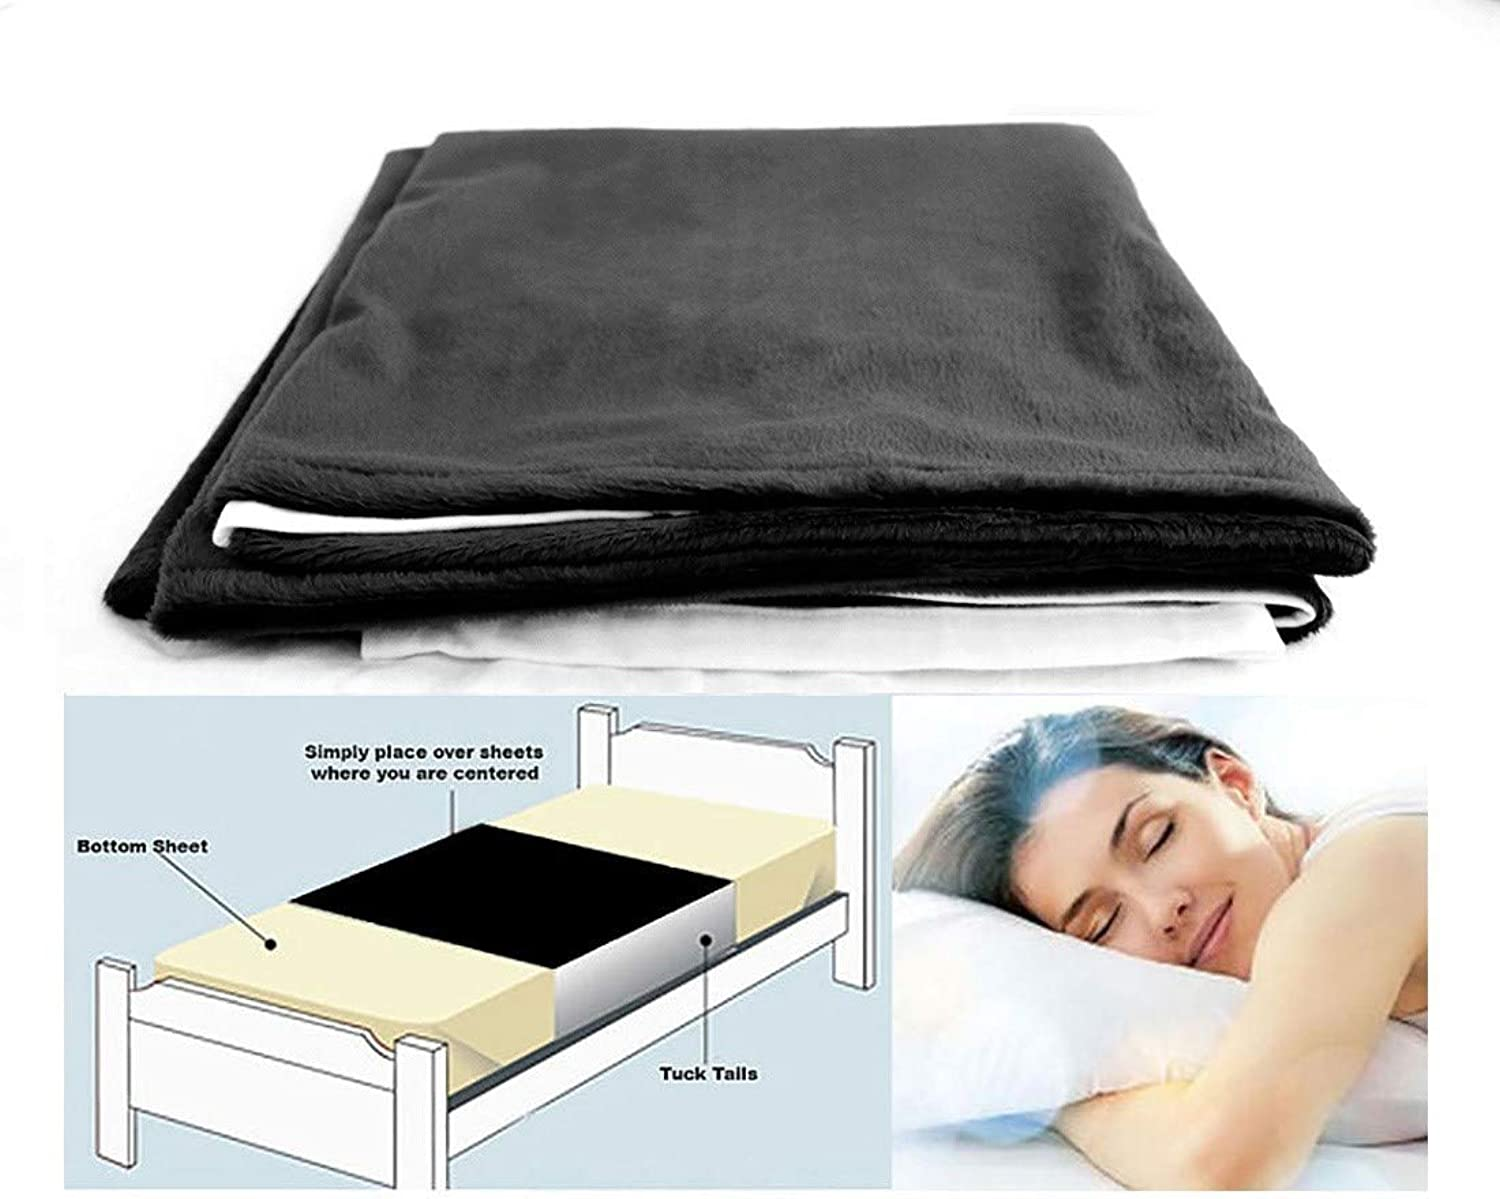 Cycleliners Period Bed Sheets Predector - Waterproof, Leakproof and Reusable Menstrual Bed Pad (Twin, Black)